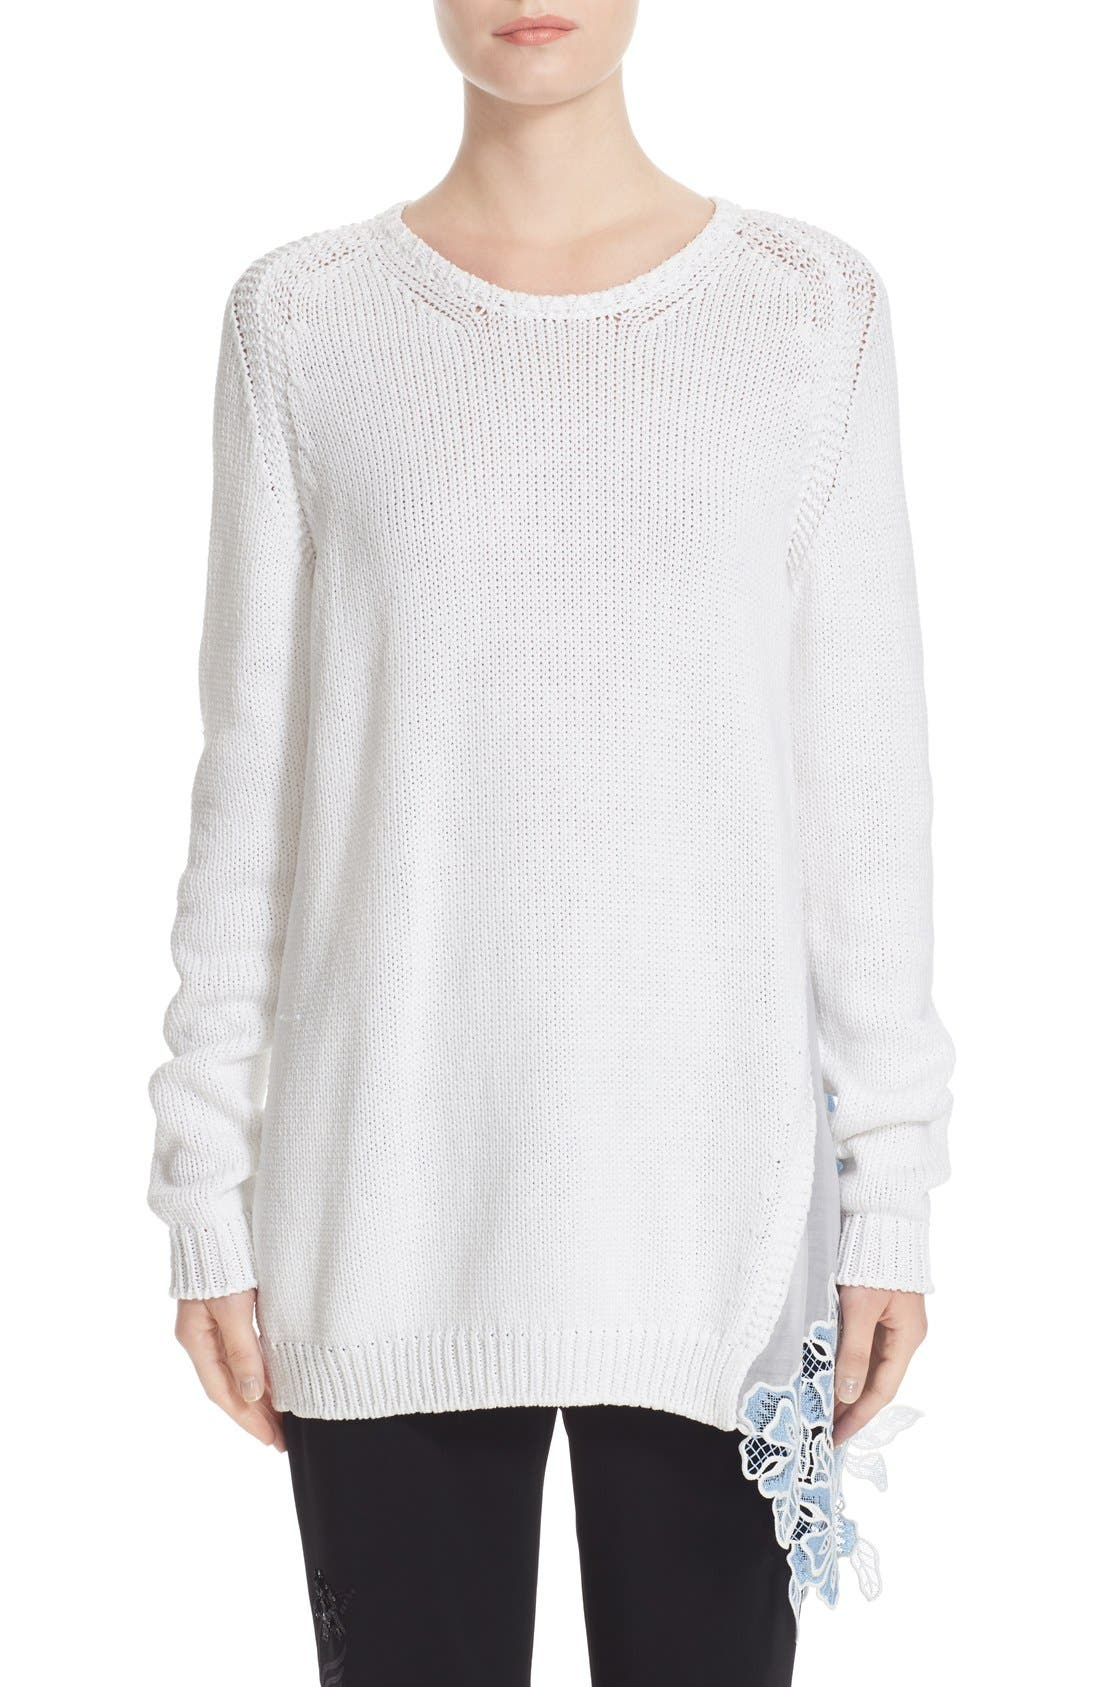 N°21 Lace Inset Knit Pullover